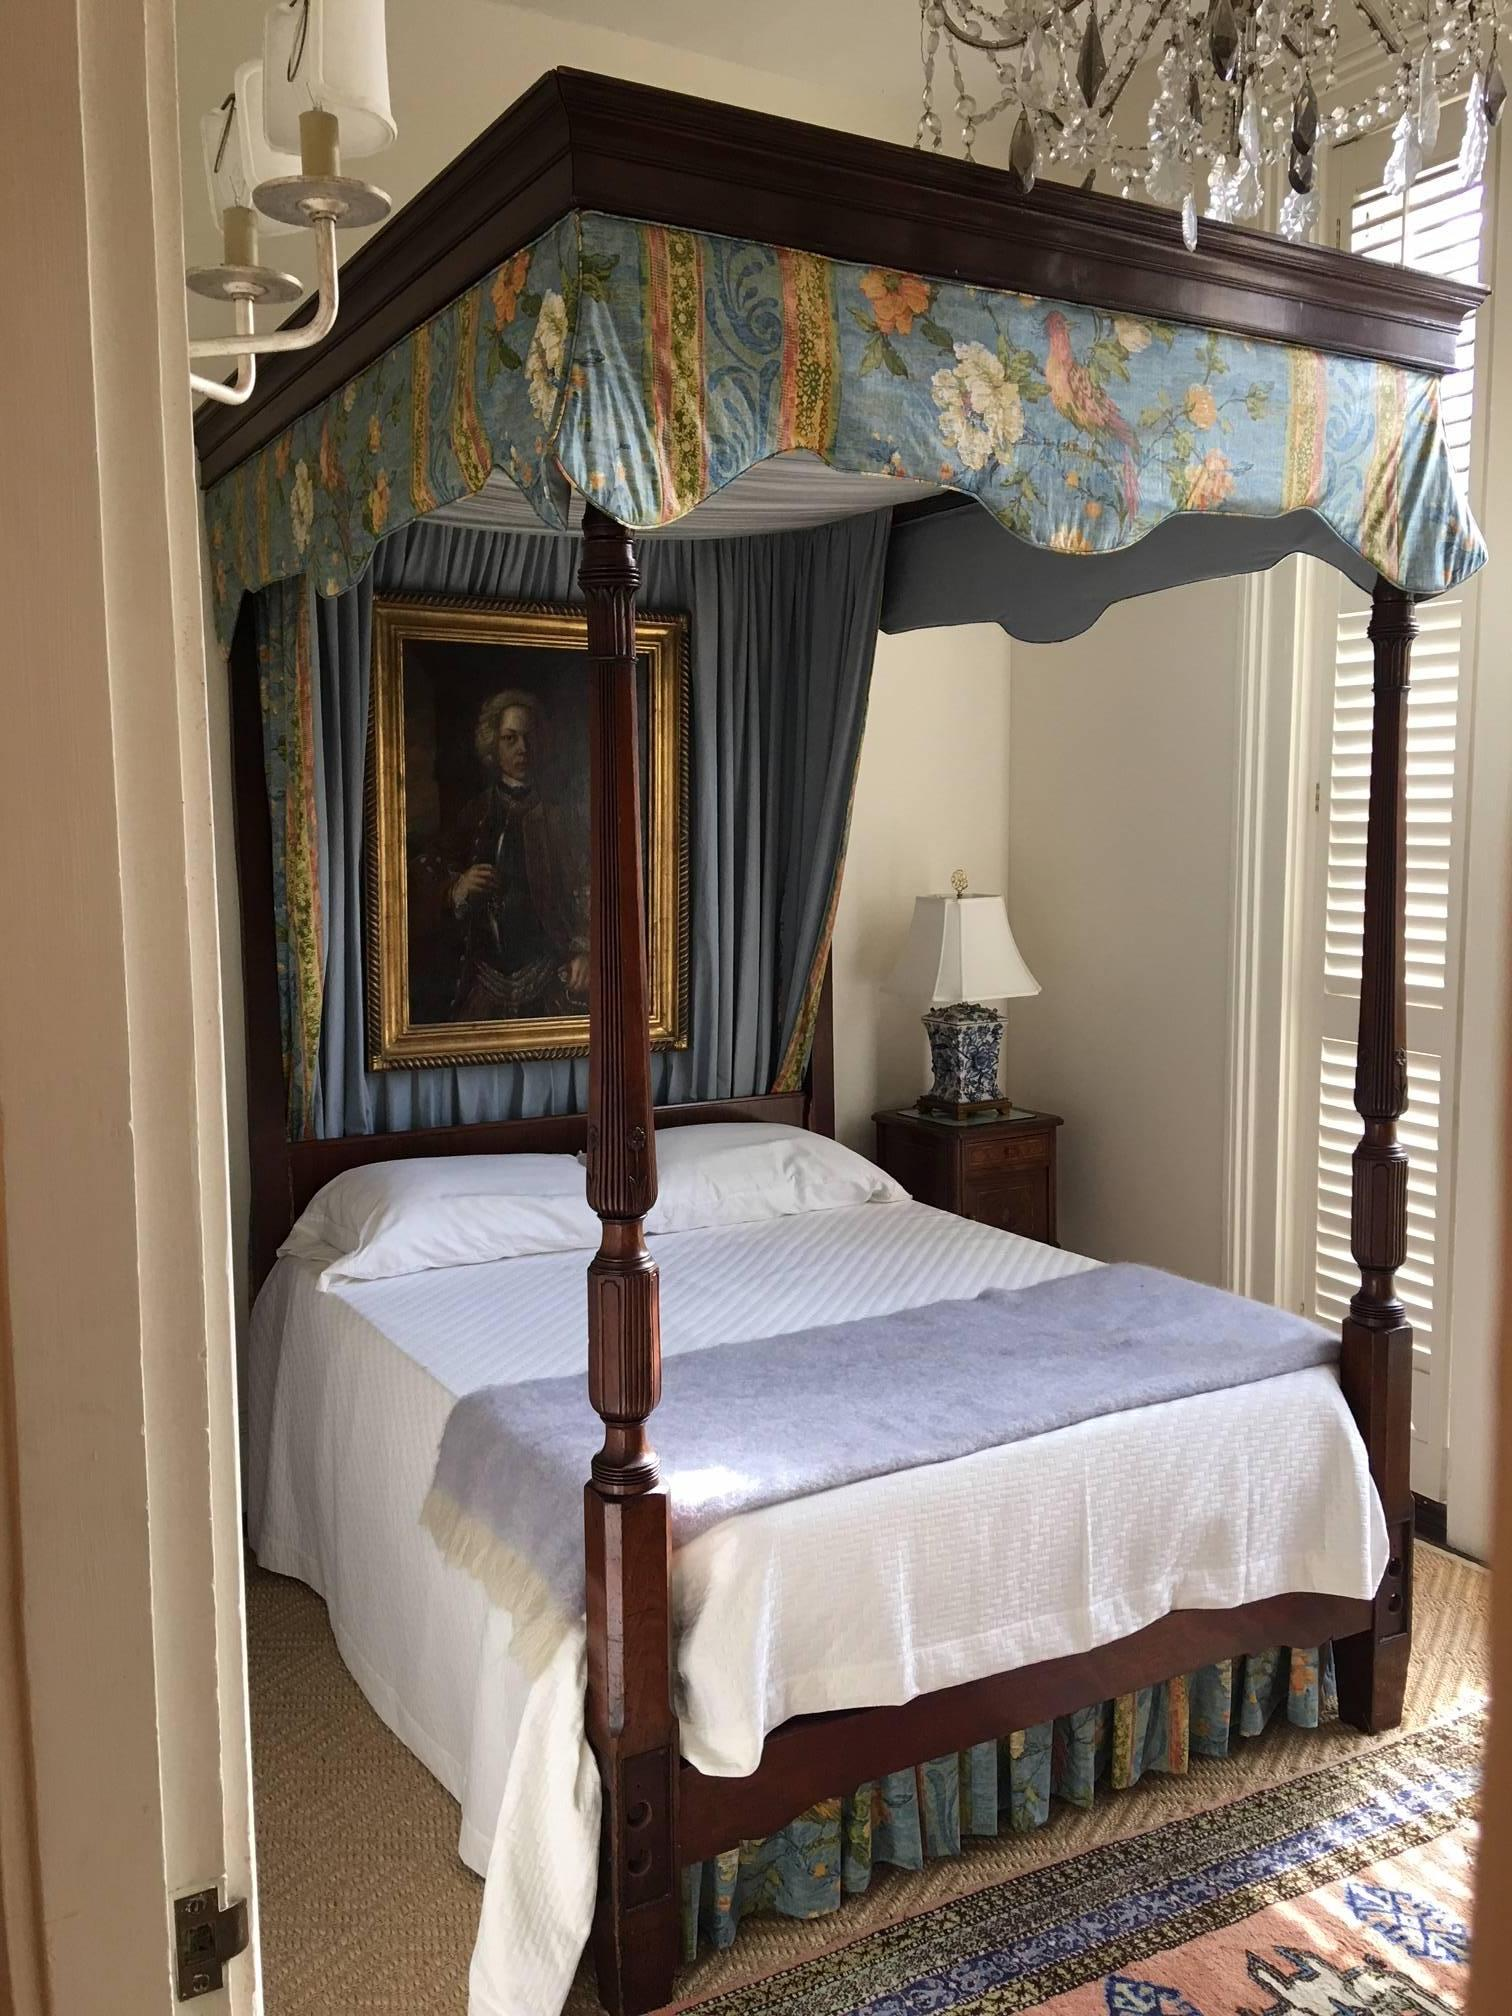 Carved Mahogany Four Poster Bed With Canopy, 19th Century